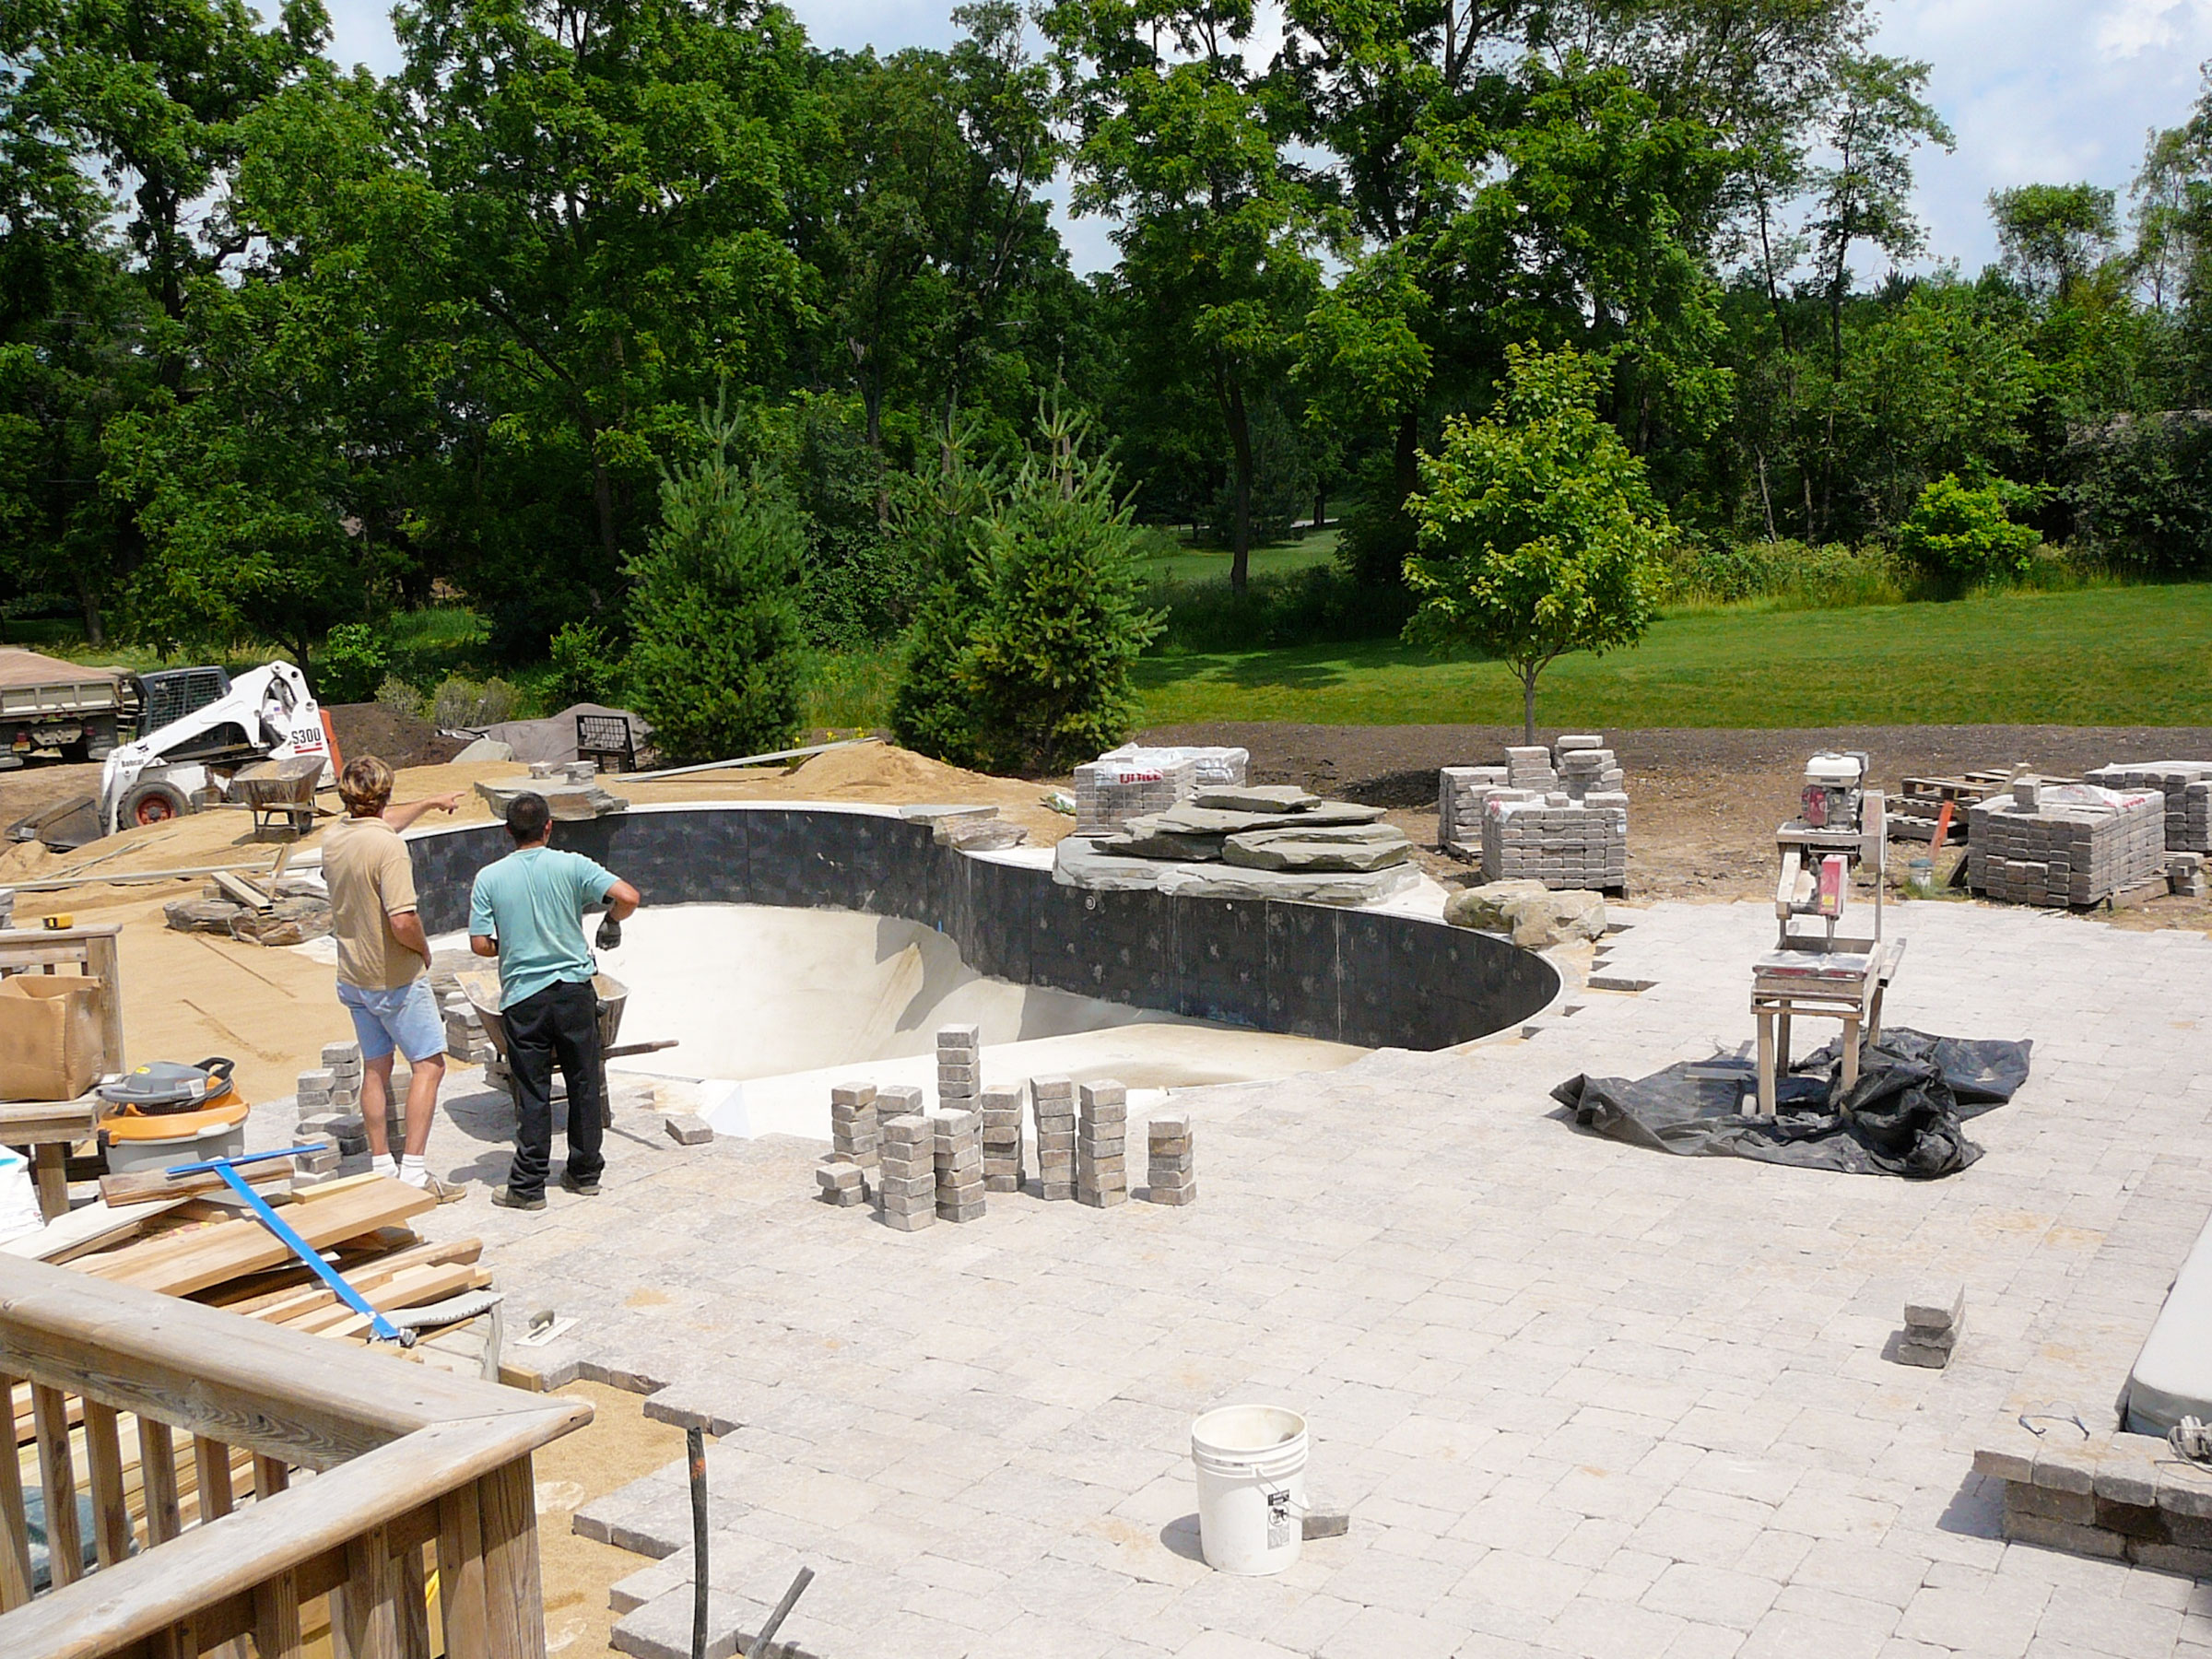 Expert patio installation using Stonehenge (Unilock) Paver Stone, and bluestone cutcropping installed for waterfall and diving rock